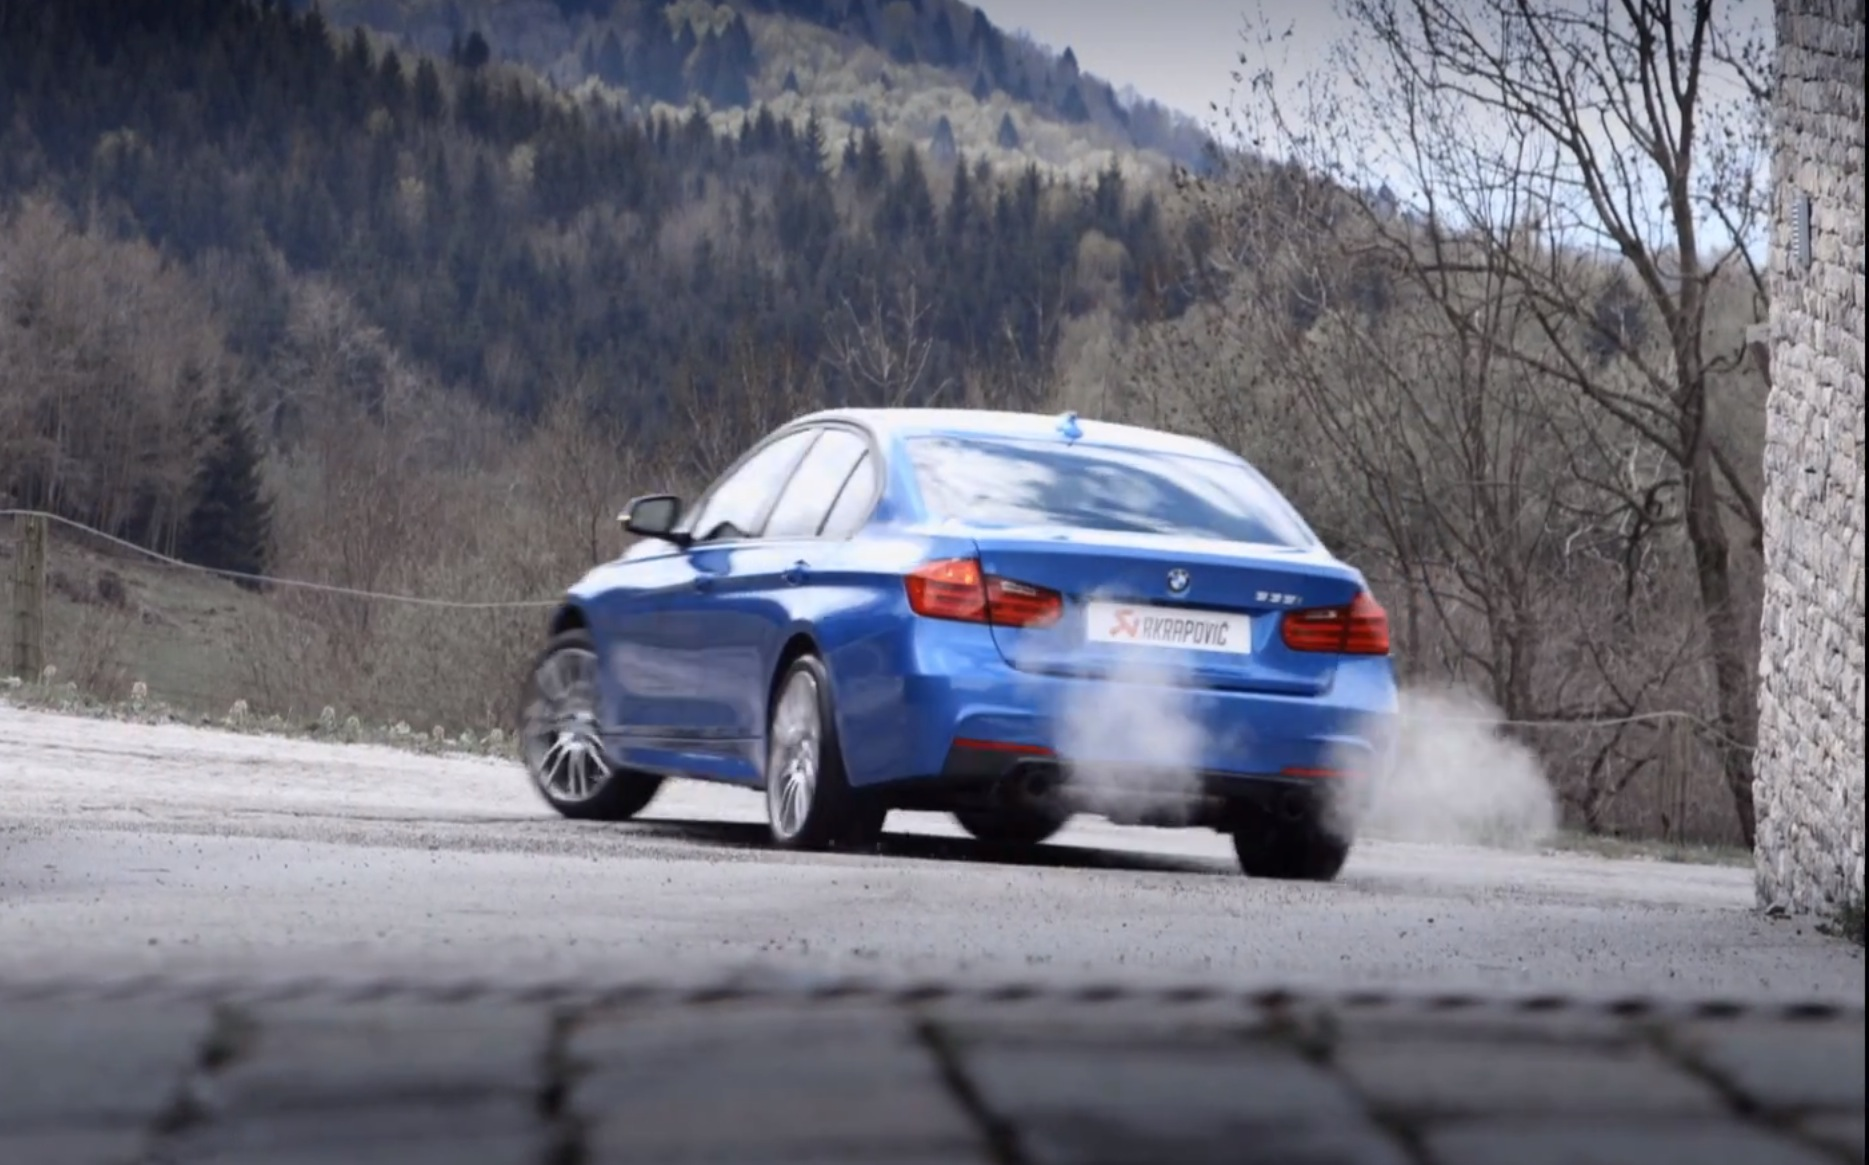 F30 335i akrapovic evolution exhaust system video feature